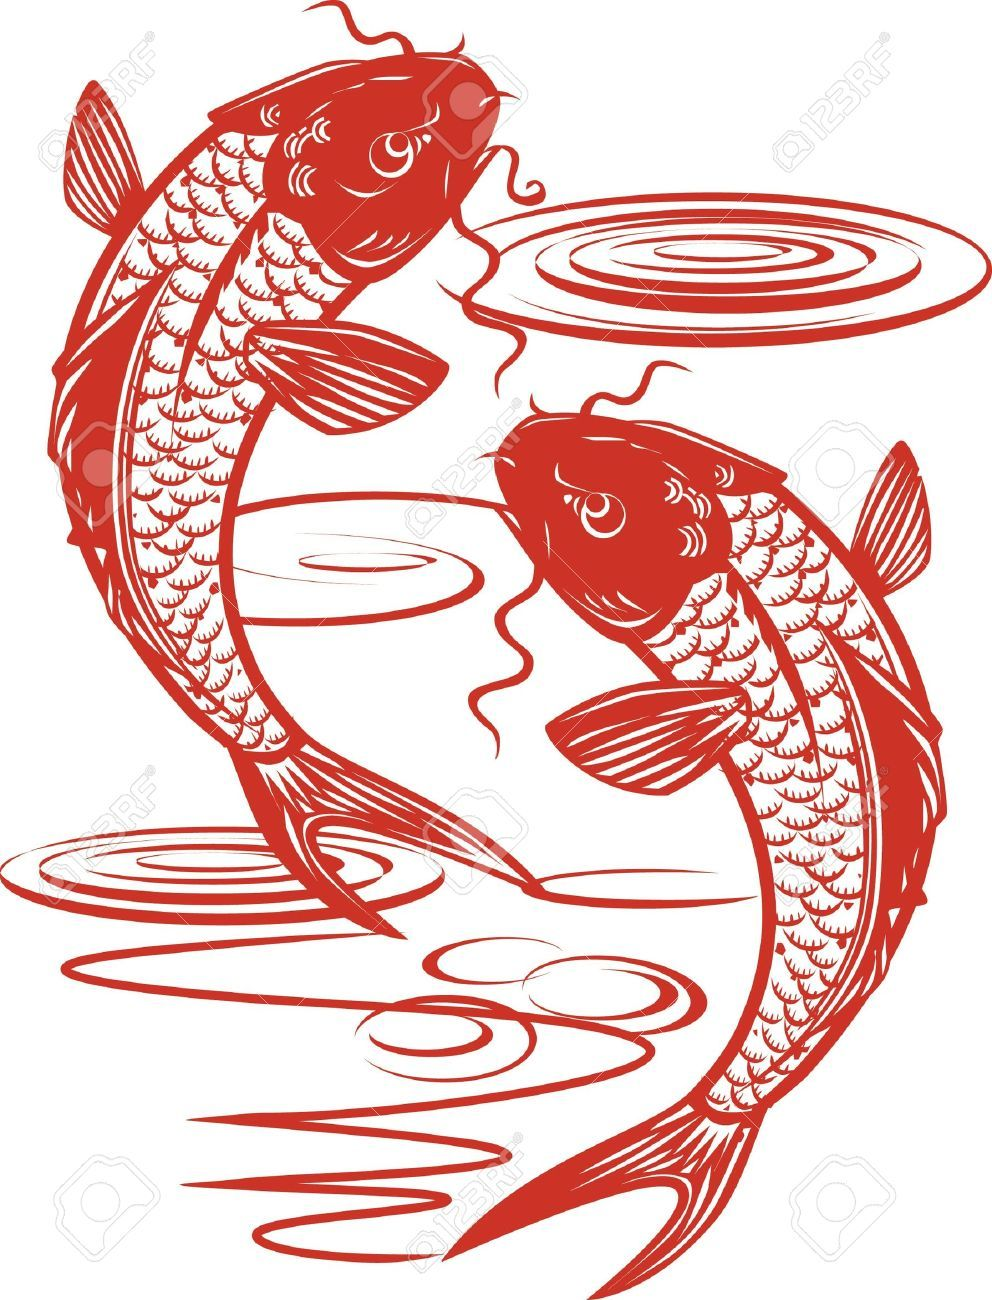 Koi fish stock vector illustration and royalty free koi for Koi fish vector